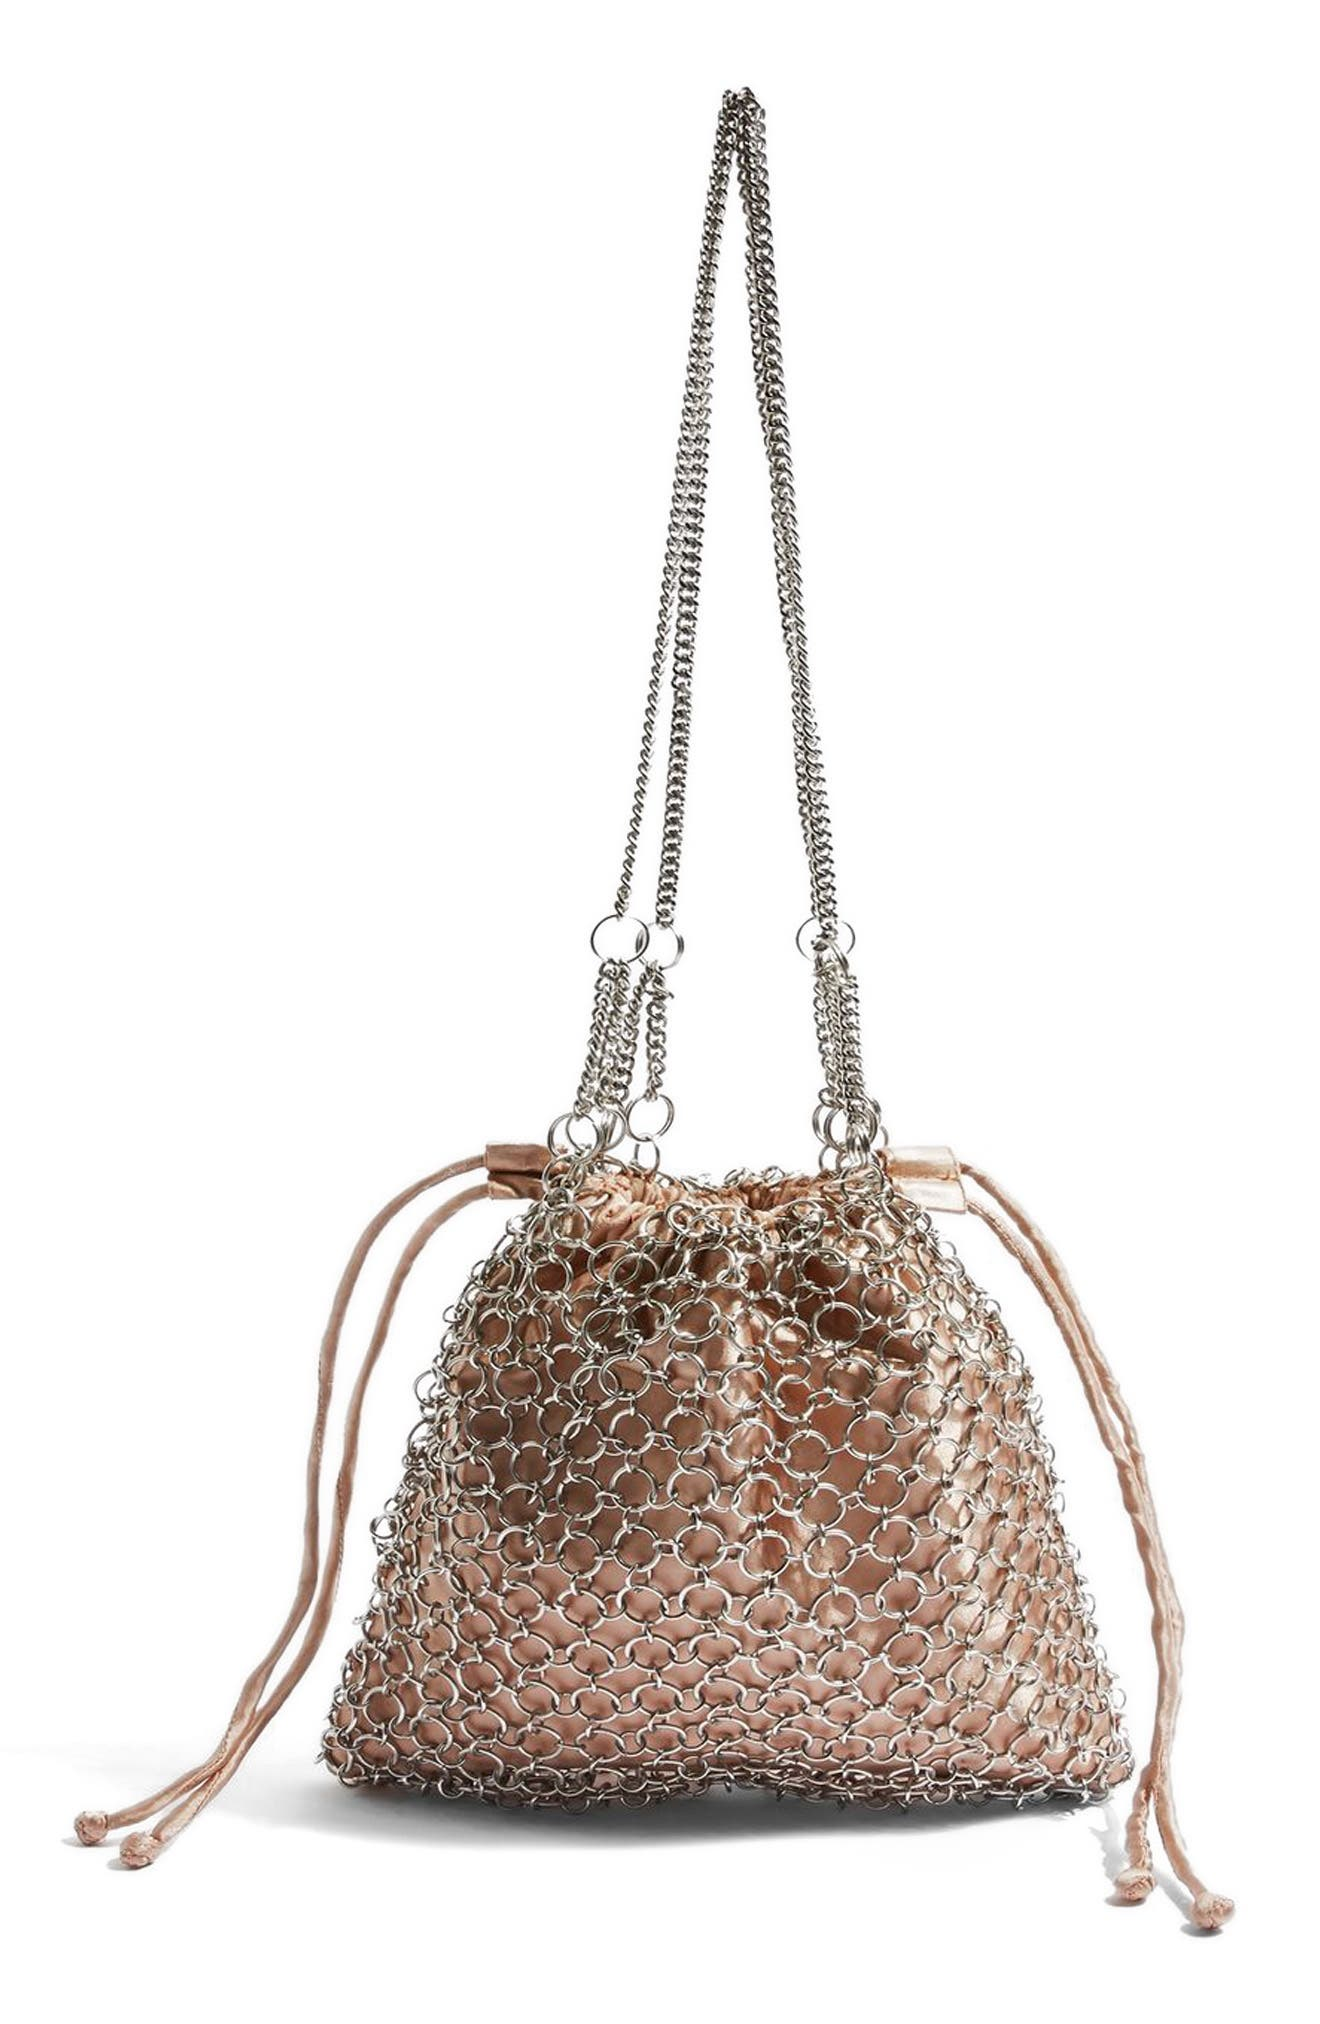 Cage Drawstring Shoulder Bag,                             Main thumbnail 1, color,                             Pink Multi